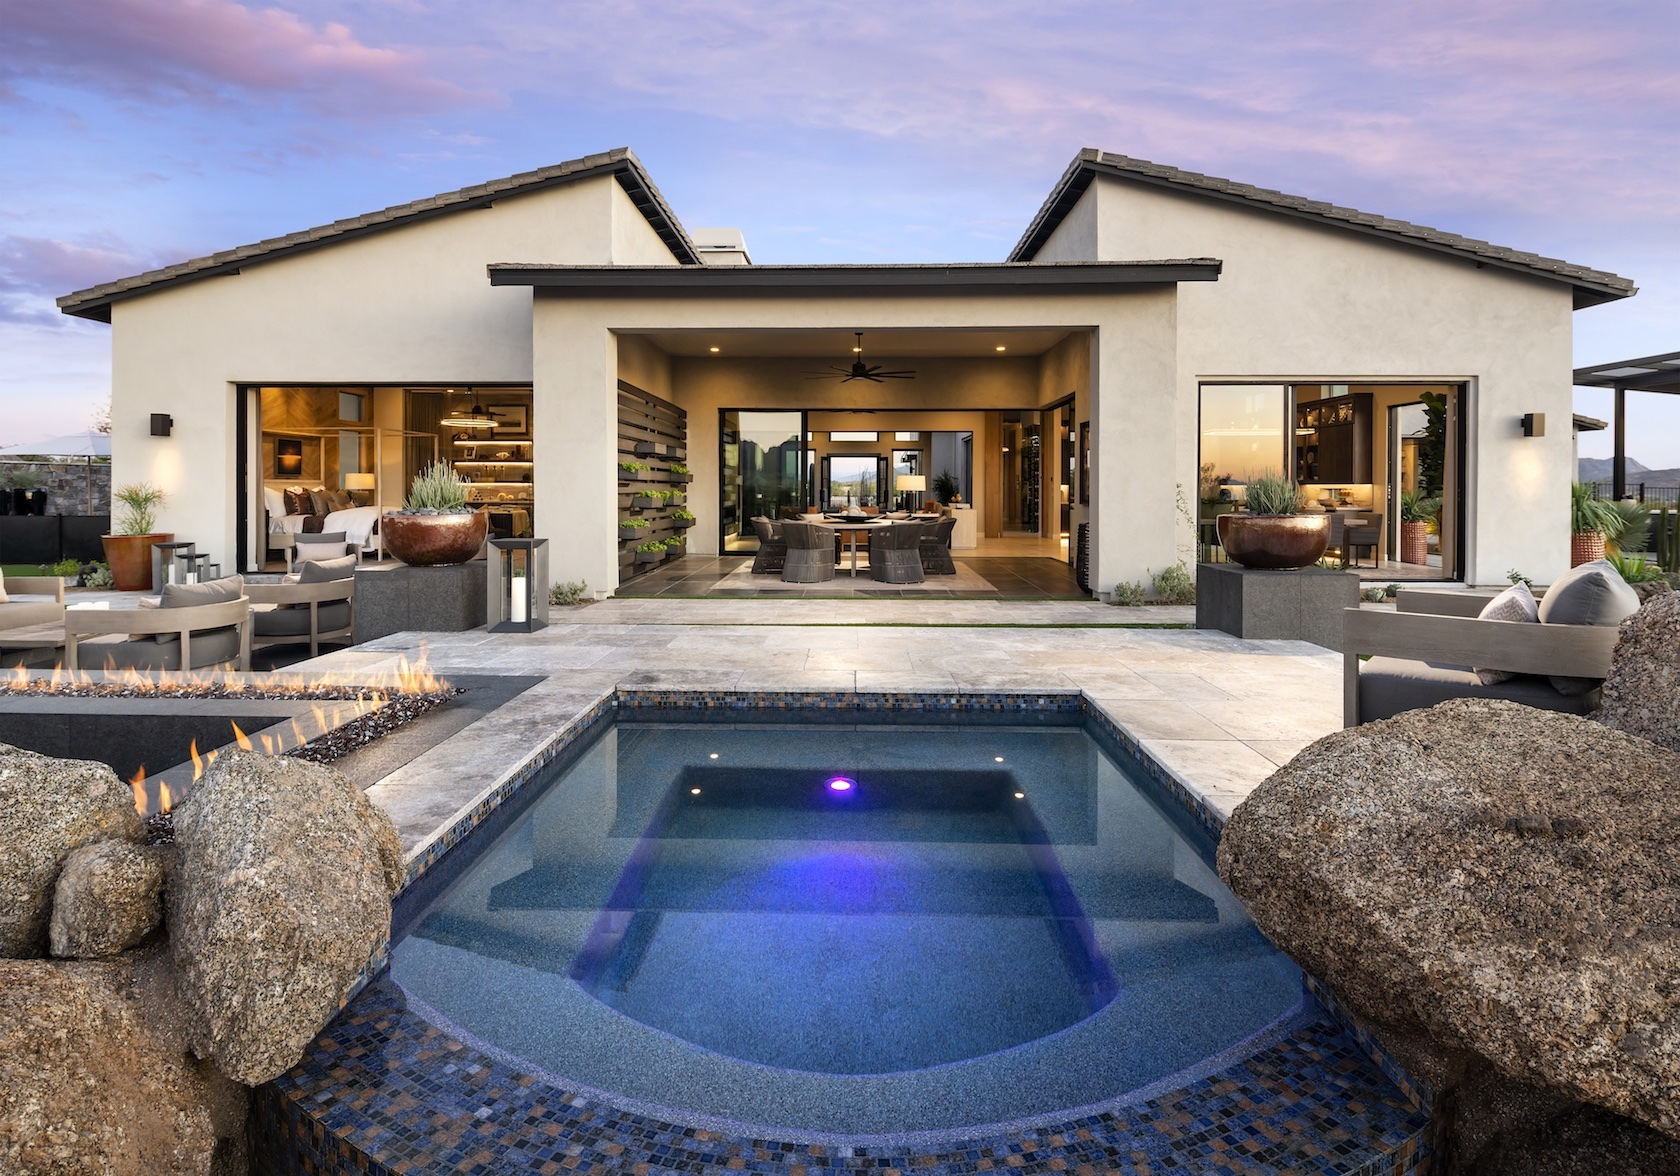 Contemporary home in Arizona